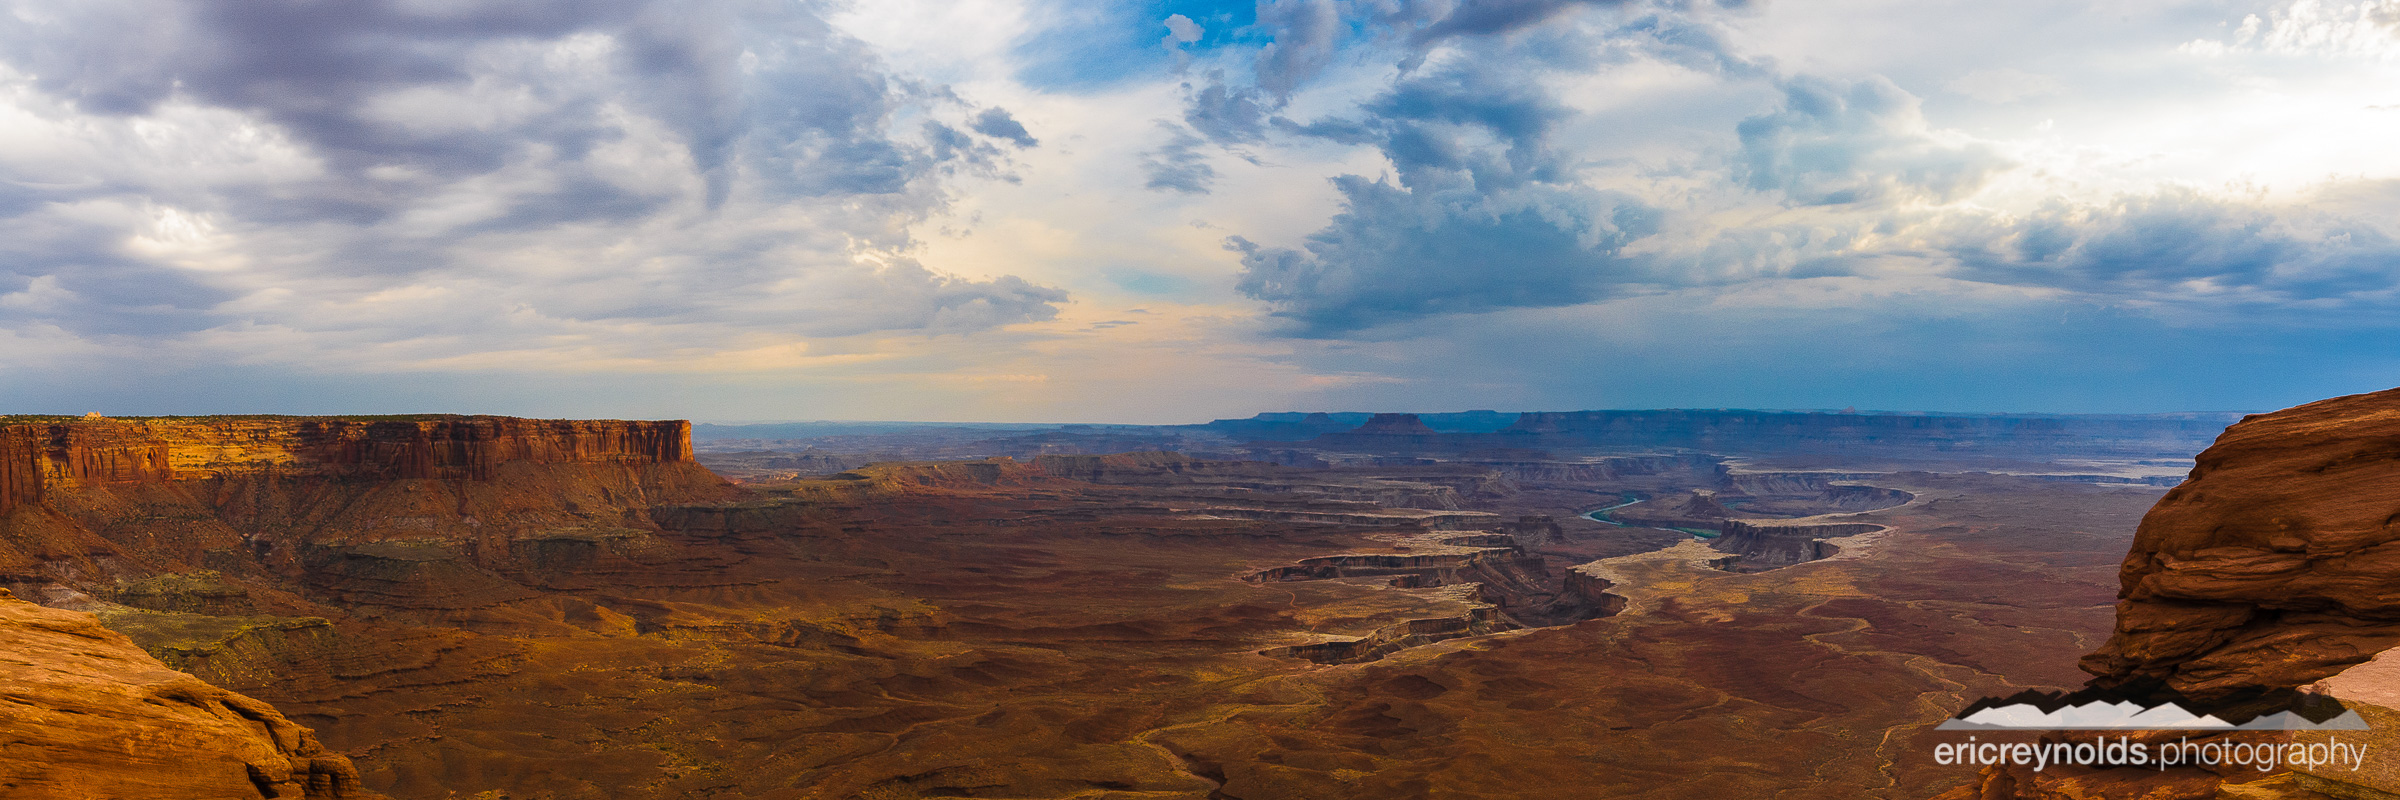 Green River Overlook by Eric Reynolds - Landscape Photographer